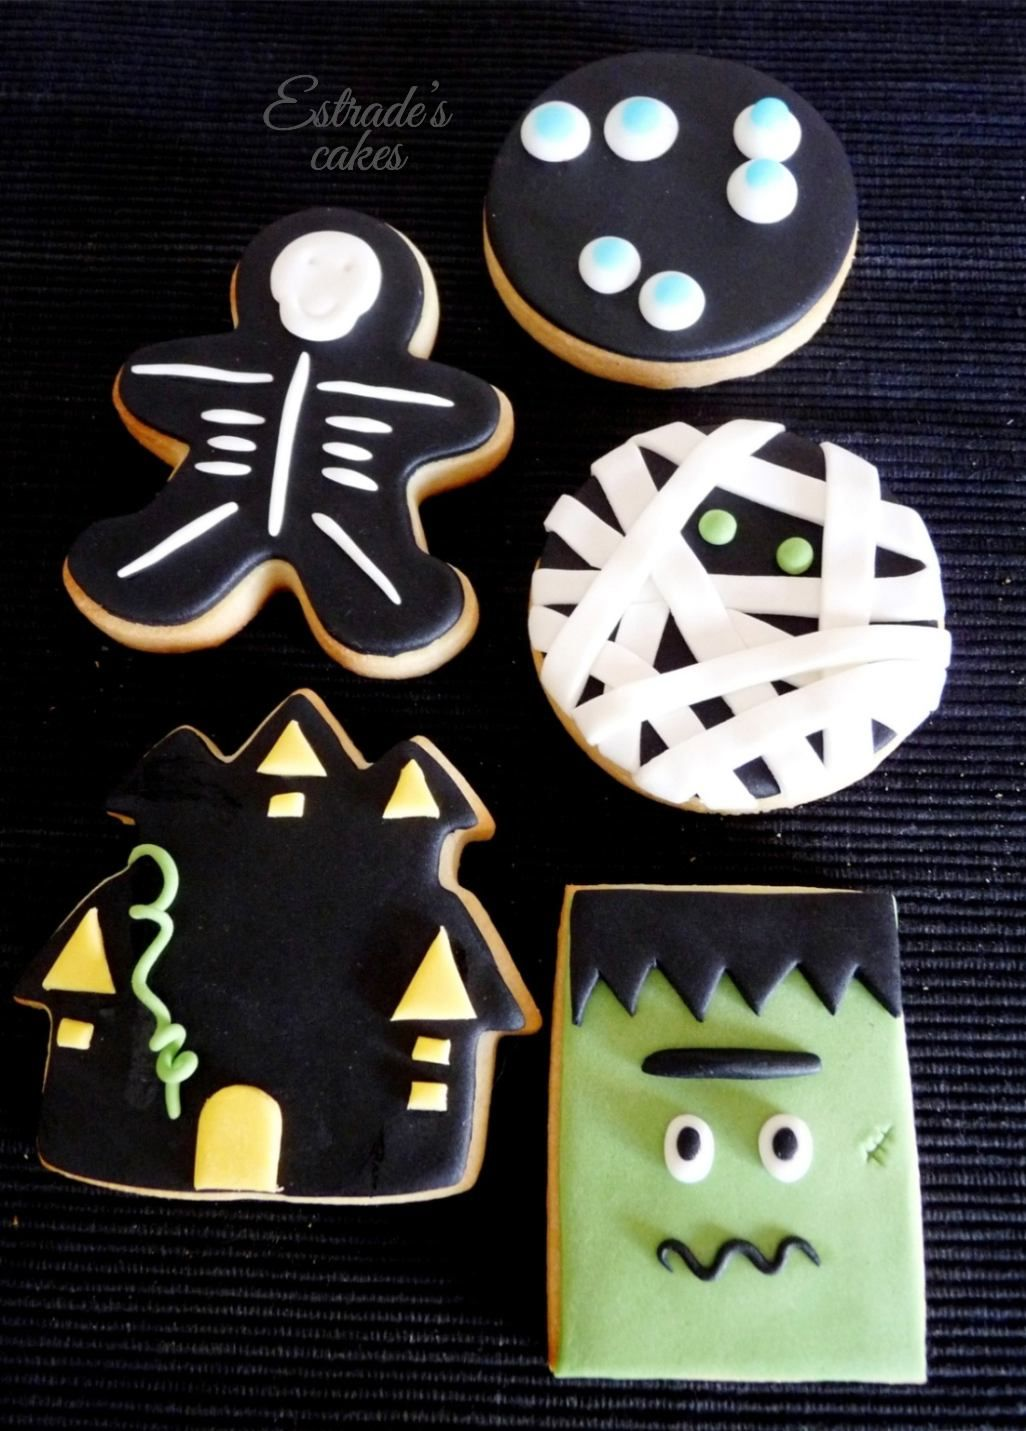 Galletas Decoradas Hallowen Estrade 39s Cakes Galletas De Halloween Con Fondant